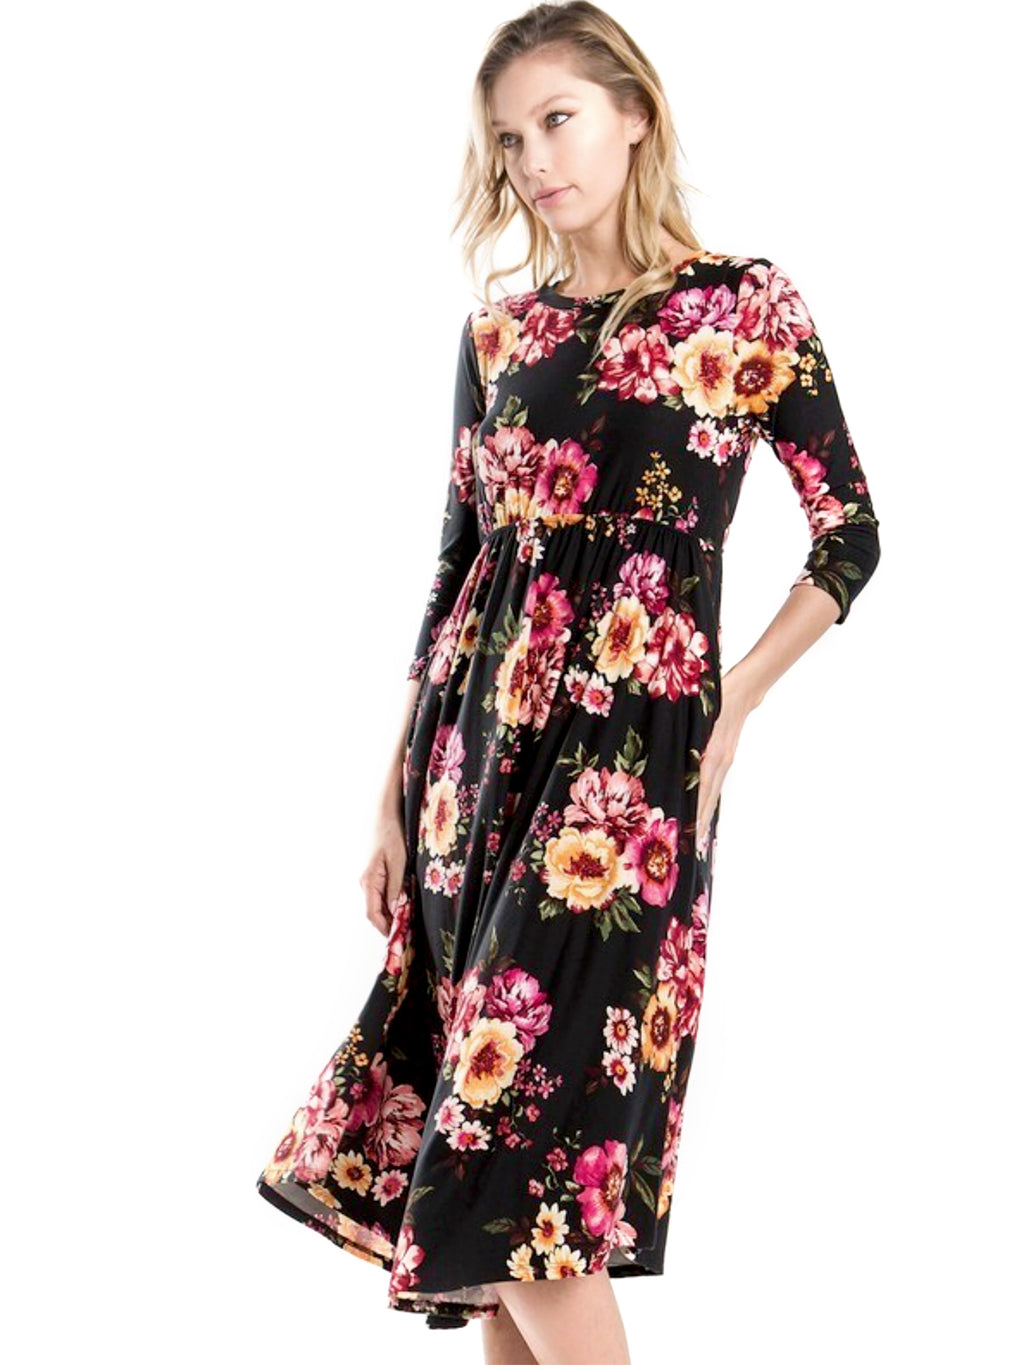 Floral Black Swing Dress with Hidden Pockets | Day Sweven (Women's Sizes)